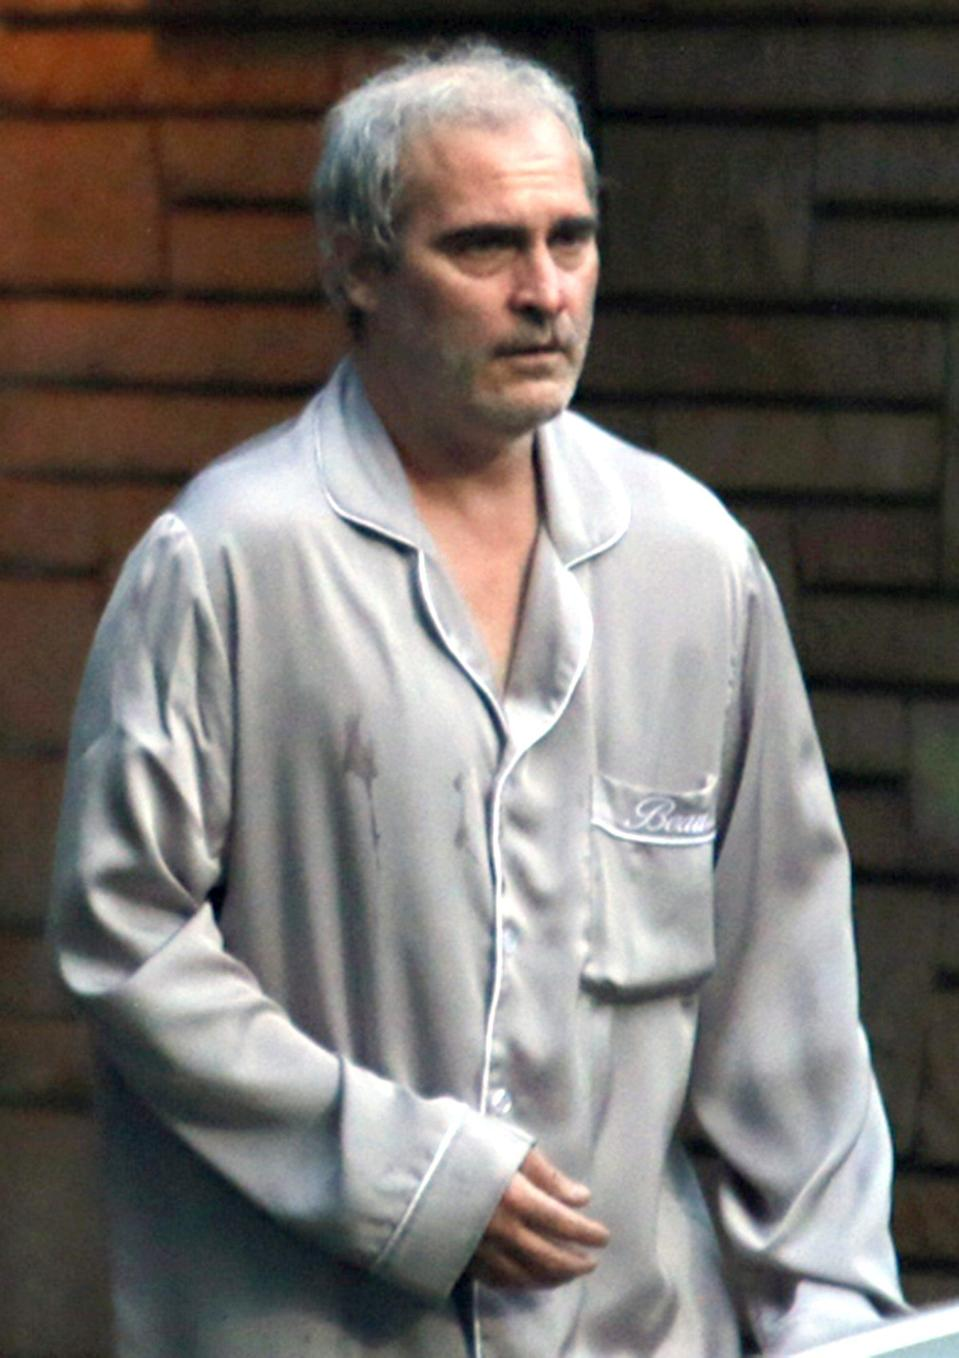 <p>Joaquin Phoenix is spotted filming <em>Disappointment Blvd.</em> in full costume in Montreal, Canada on July 21.</p>